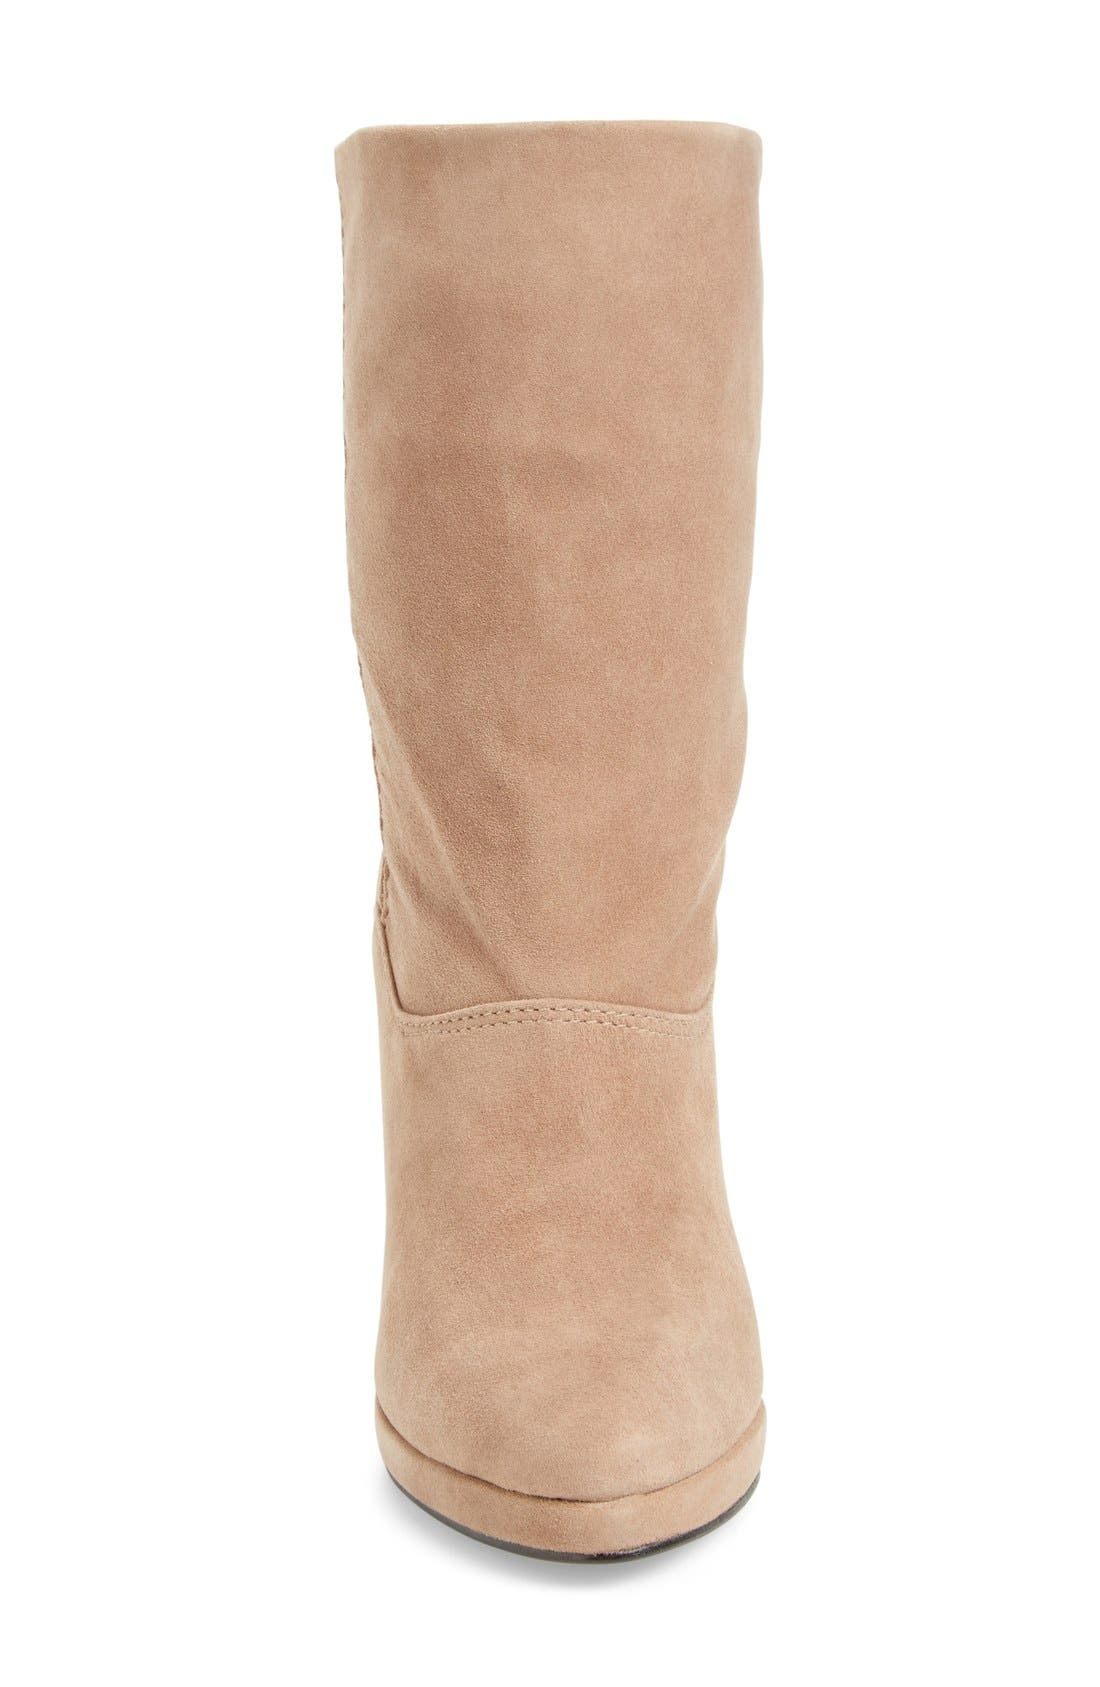 M4D3 Melanie Wedge Boot,                             Alternate thumbnail 3, color,                             Taupe Leather